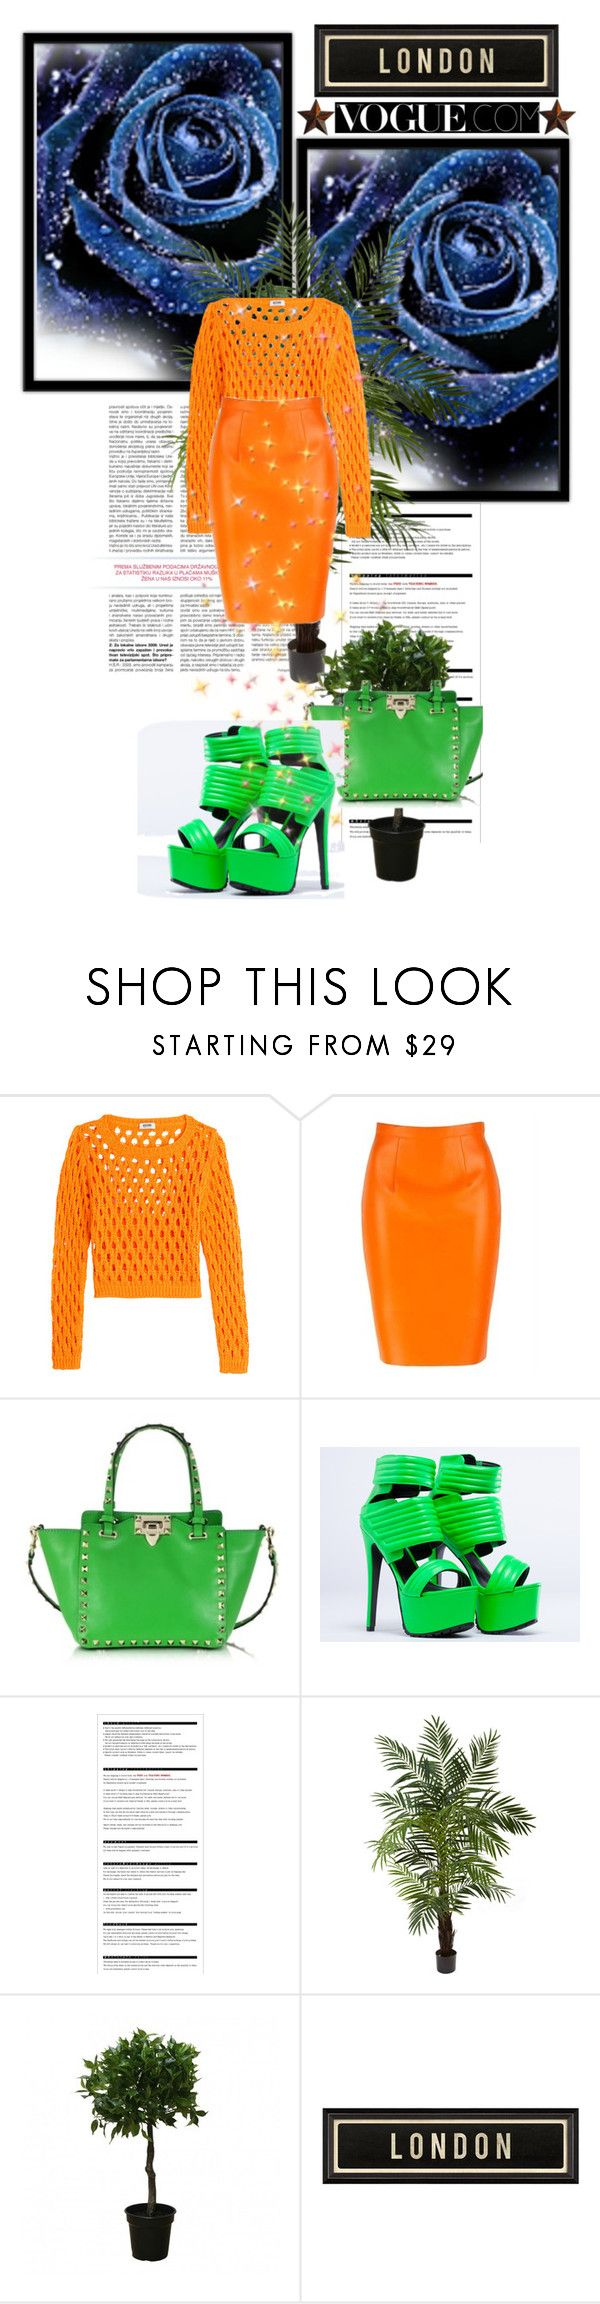 """Untitled #52"" by azrahadzic ❤ liked on Polyvore featuring Moschino Cheap & Chic, Valentino, Jennifer Chou, Arche, Nearly Natural, Brucs, Spicher and Company, Diane Von Furstenberg, Universal Lighting and Decor and GoFortheBold"